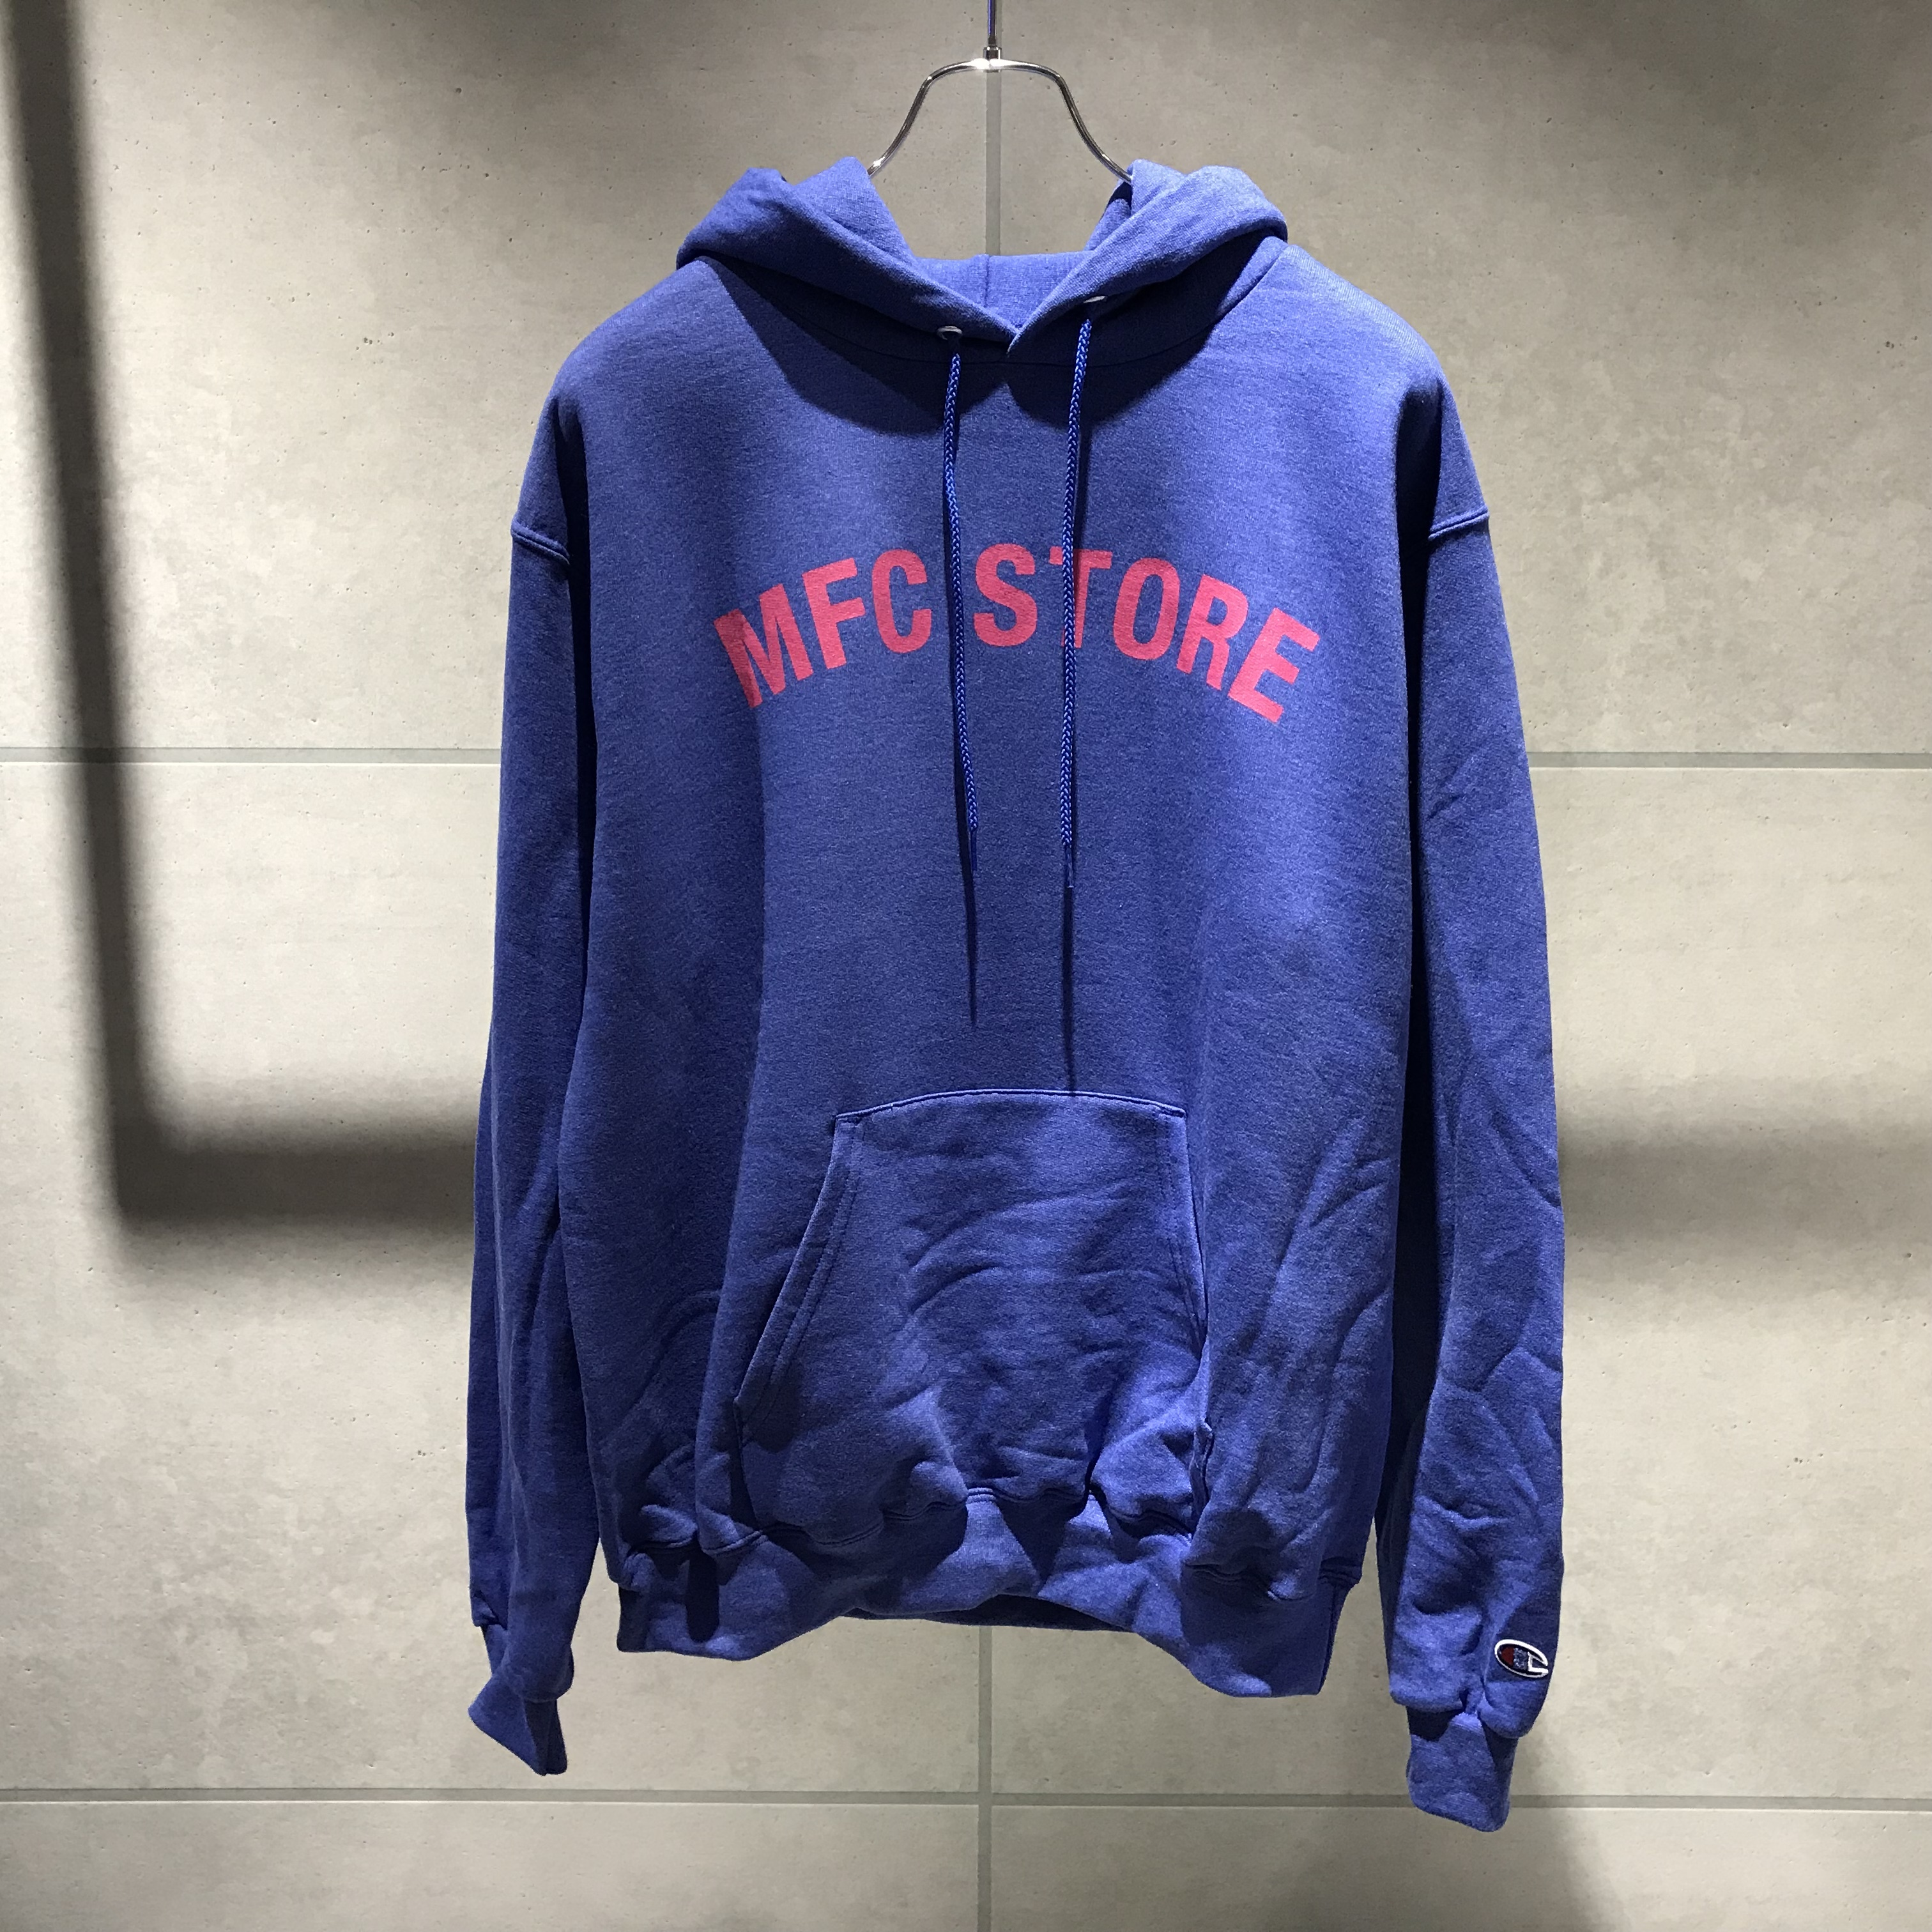 MFC STORE ARCH LOGO HOODED SWEAT SHIRT / ROYAL BLUE HATHER